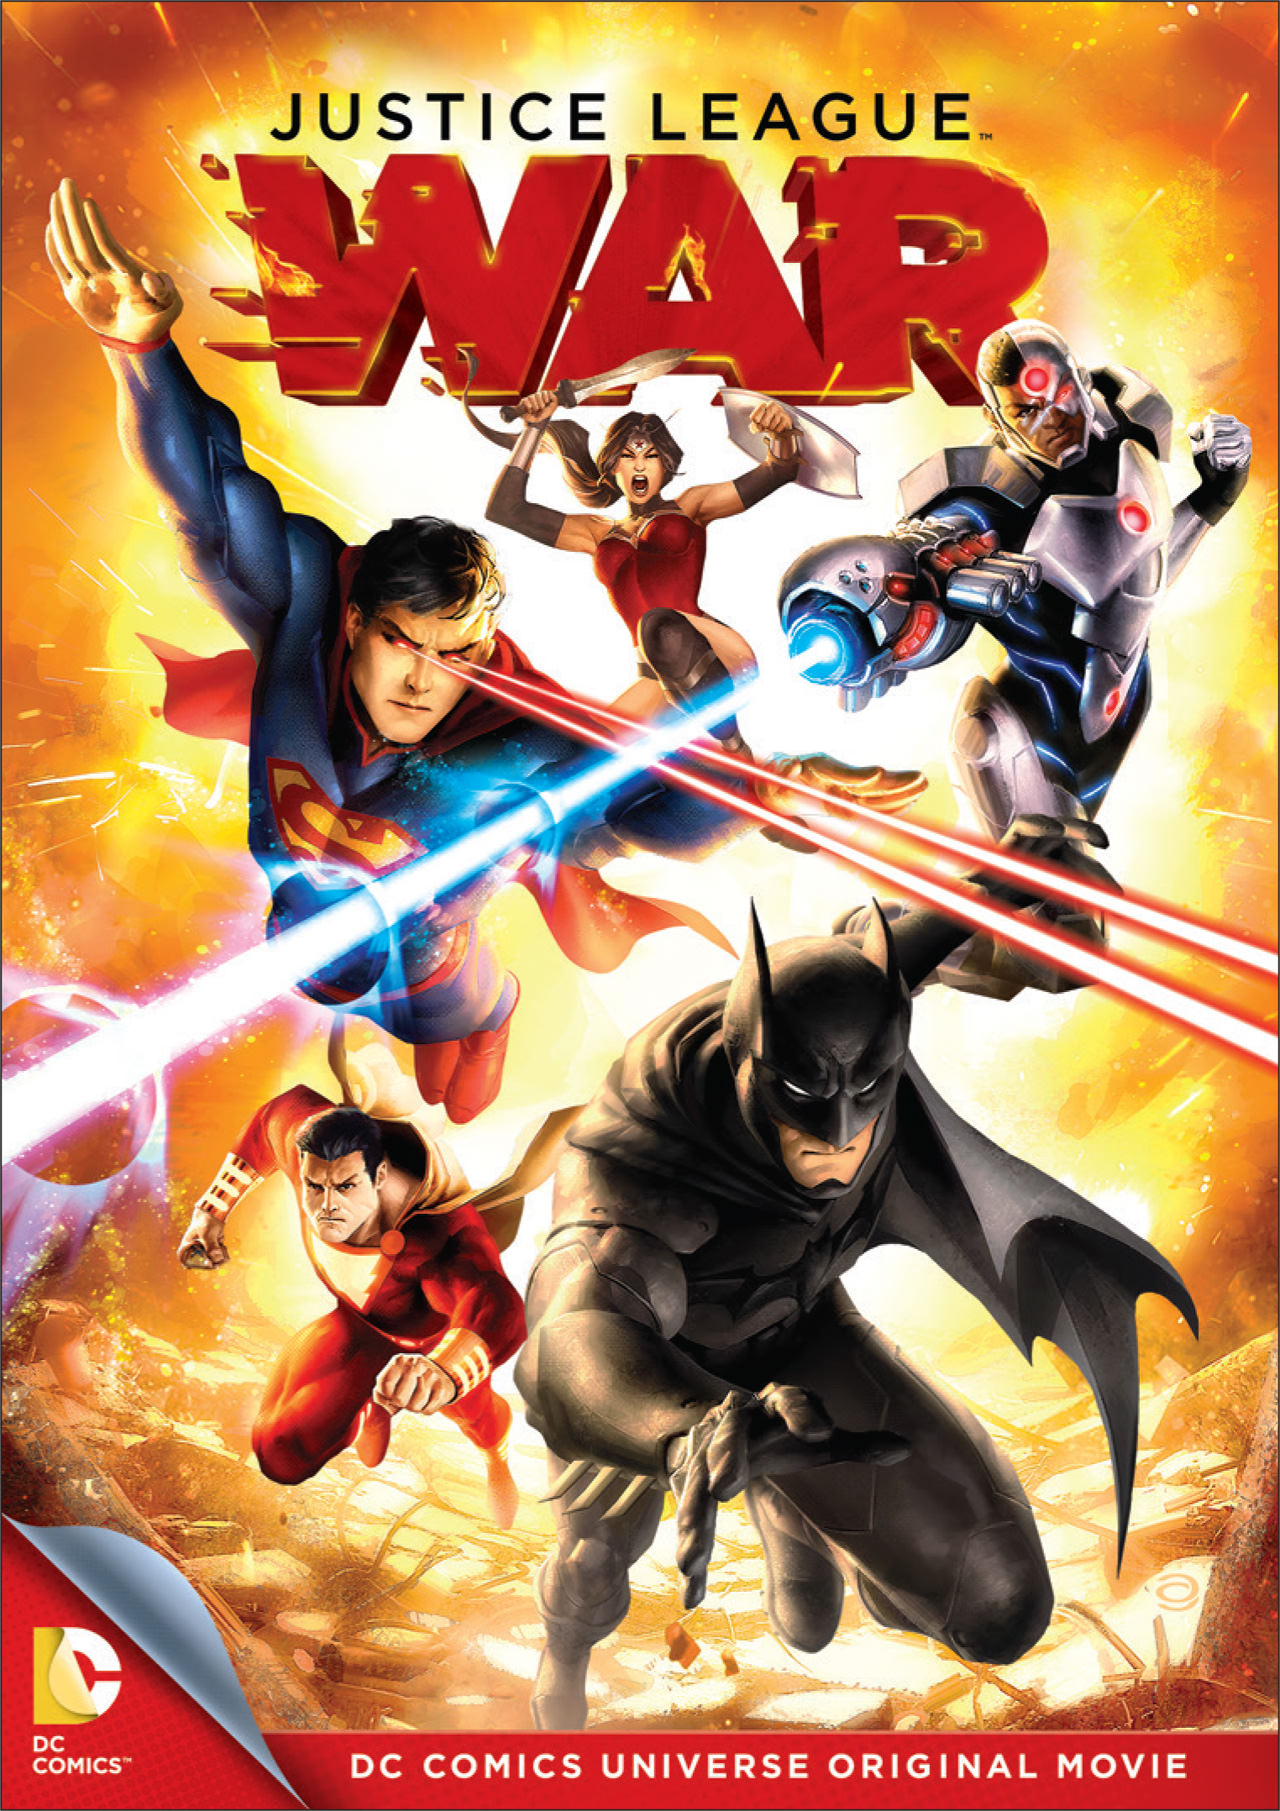 justiceleaguewarcover